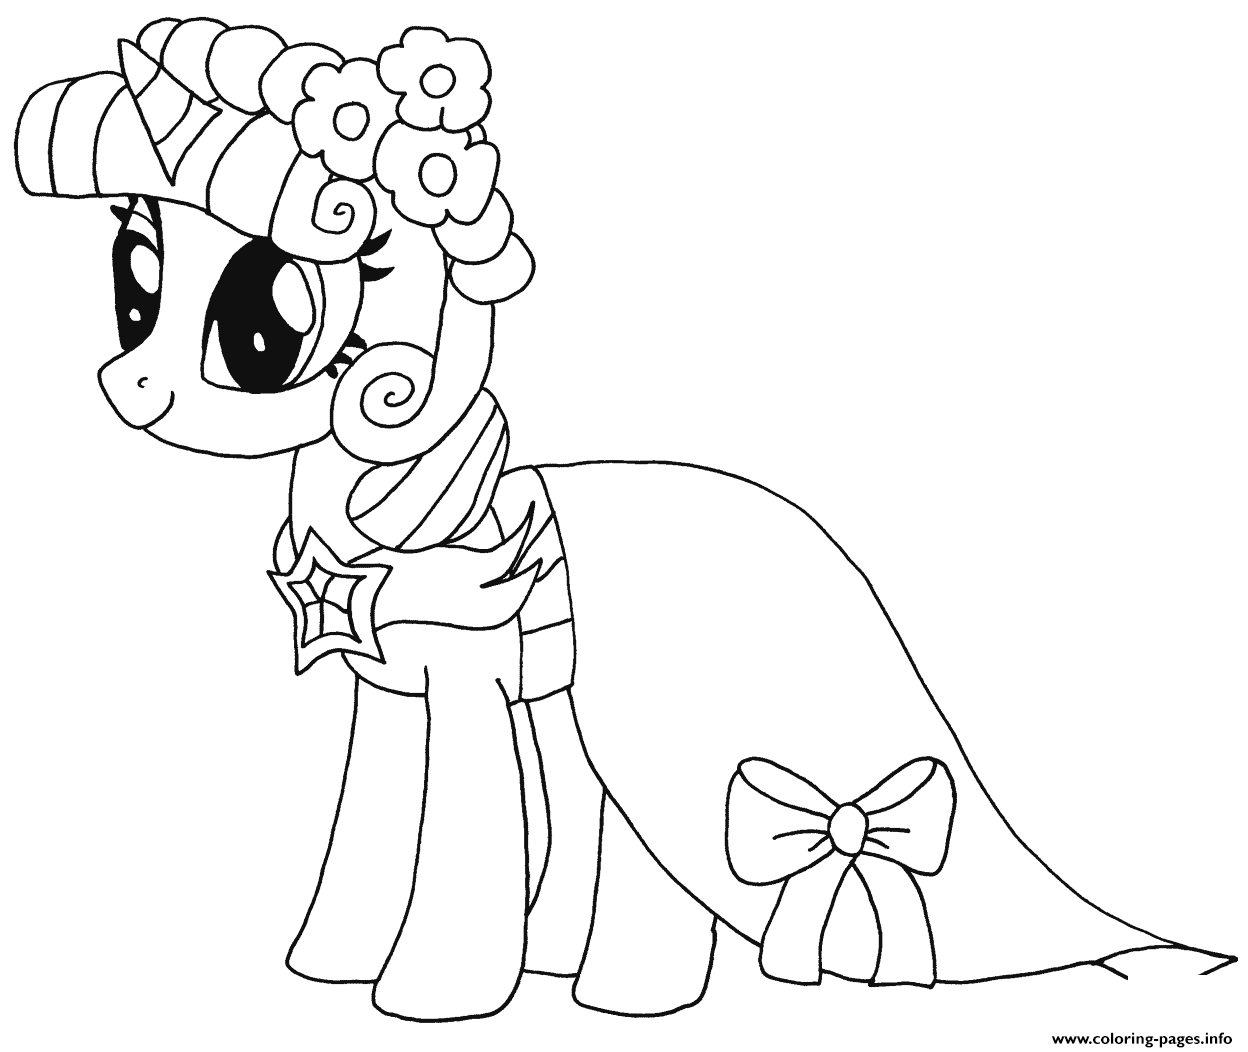 Mlp Coloring Pages My Little Pony Coloring Pages Free Printable